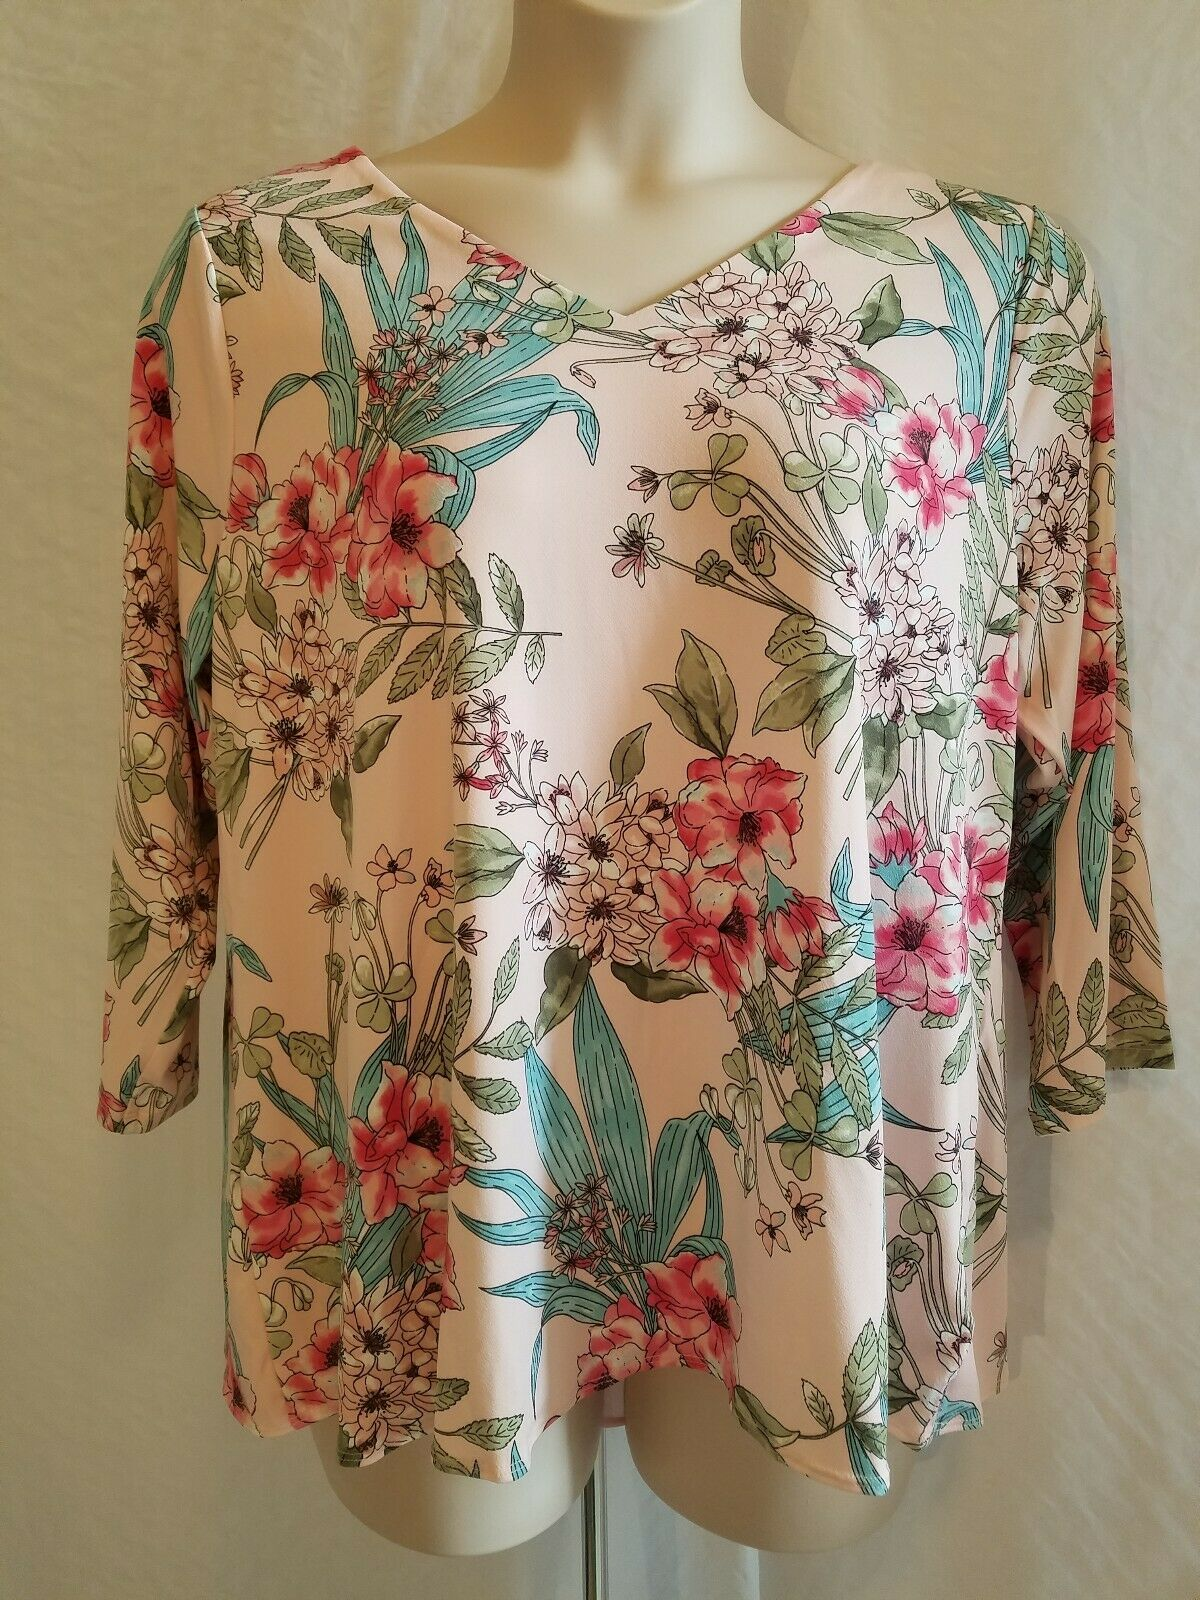 New CHARTER CLUB Woman's Plus Size 1X Floral Print 3 4 Sleeve Pink Blouse Top